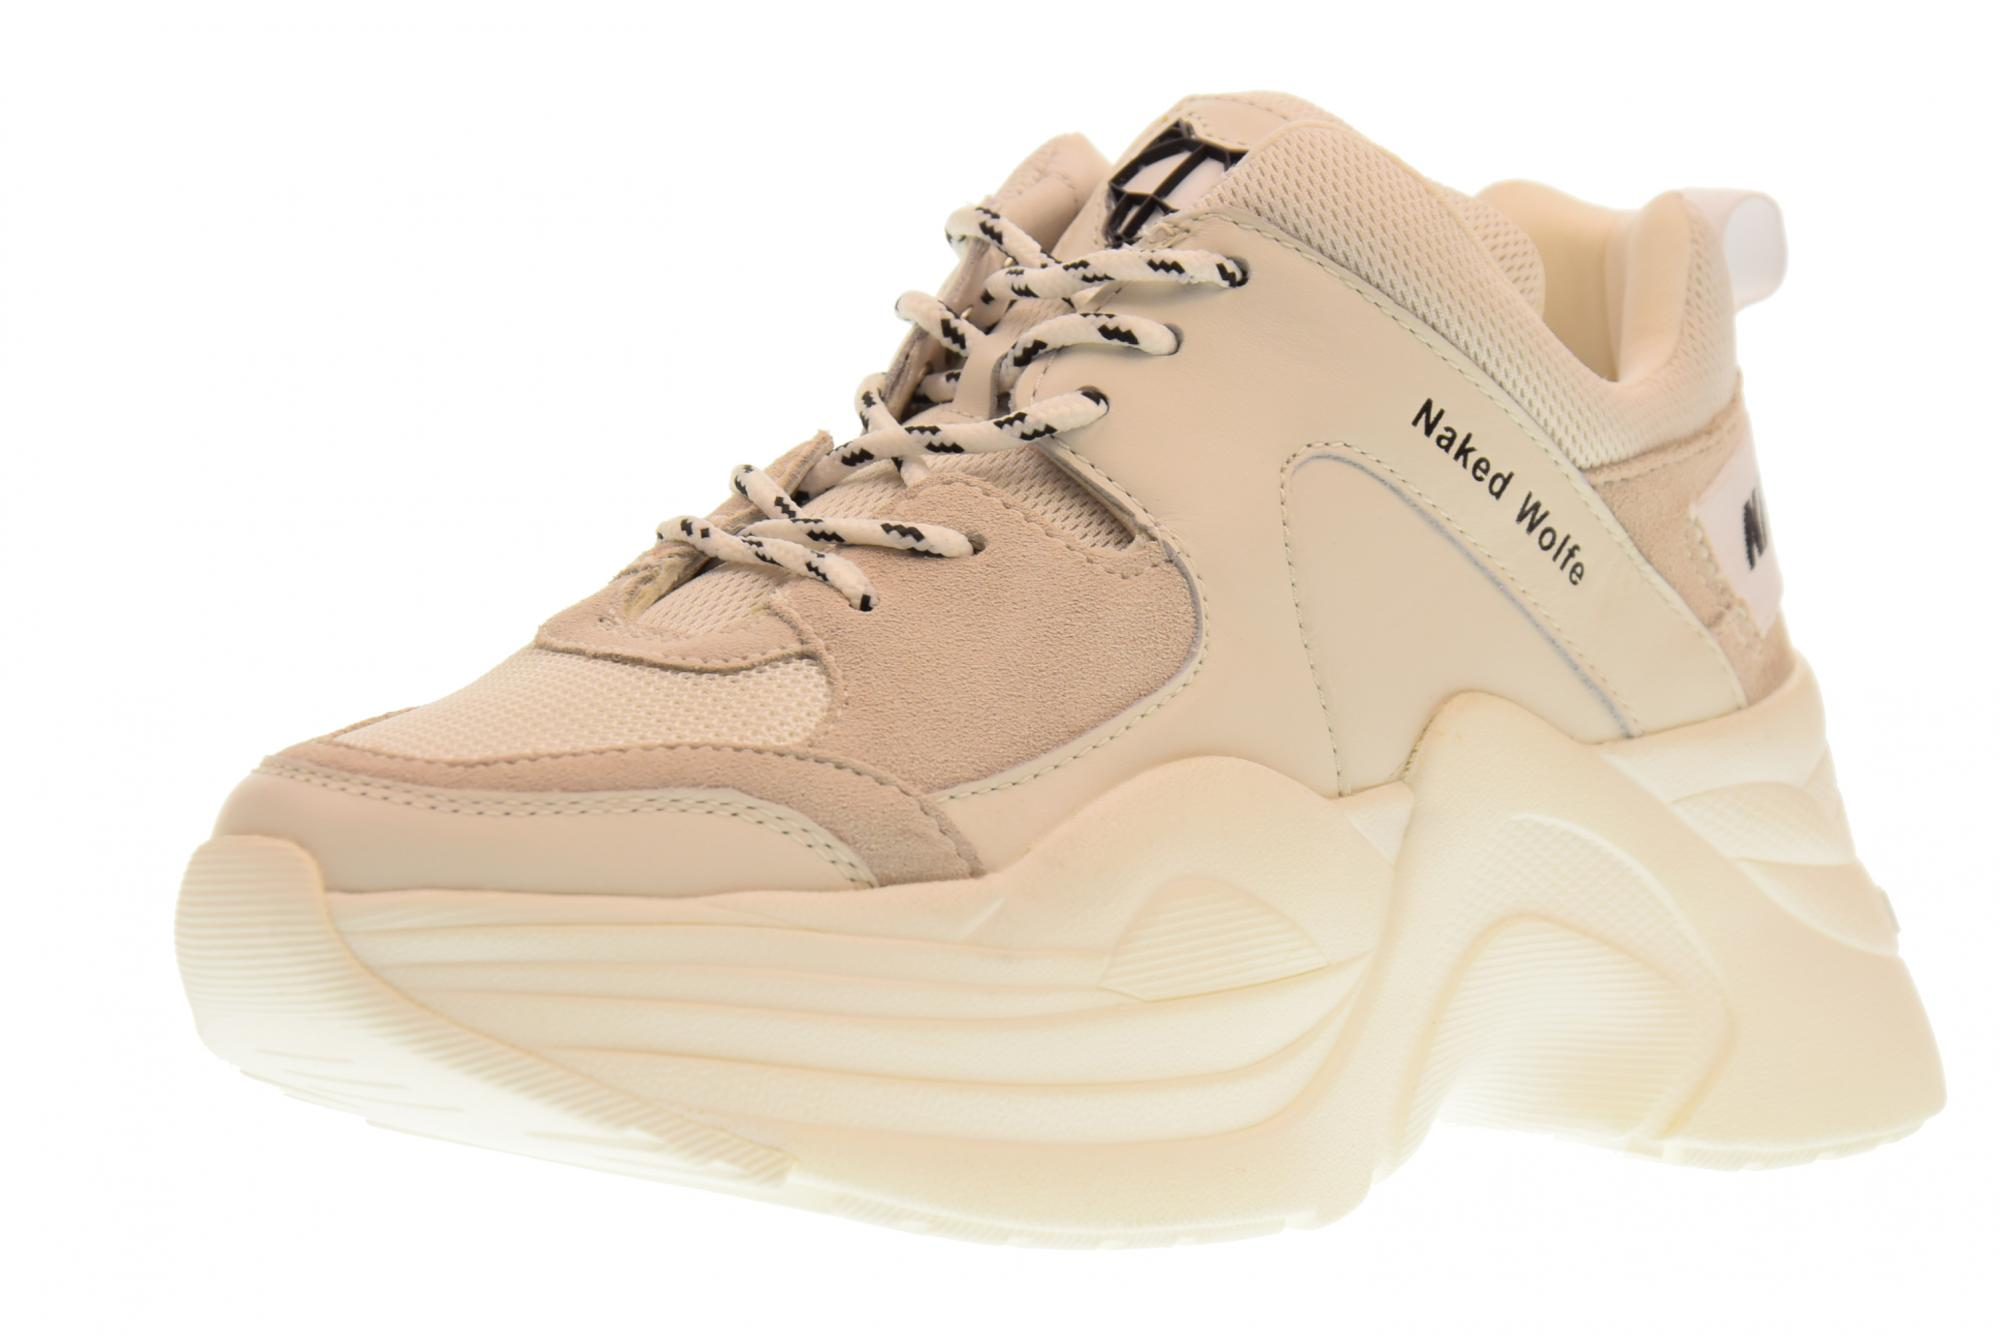 Naked Planos Mujer Con Plataforma Zapatos White ComboEbay Wolfe Track De A18s bYf7Iv6yg